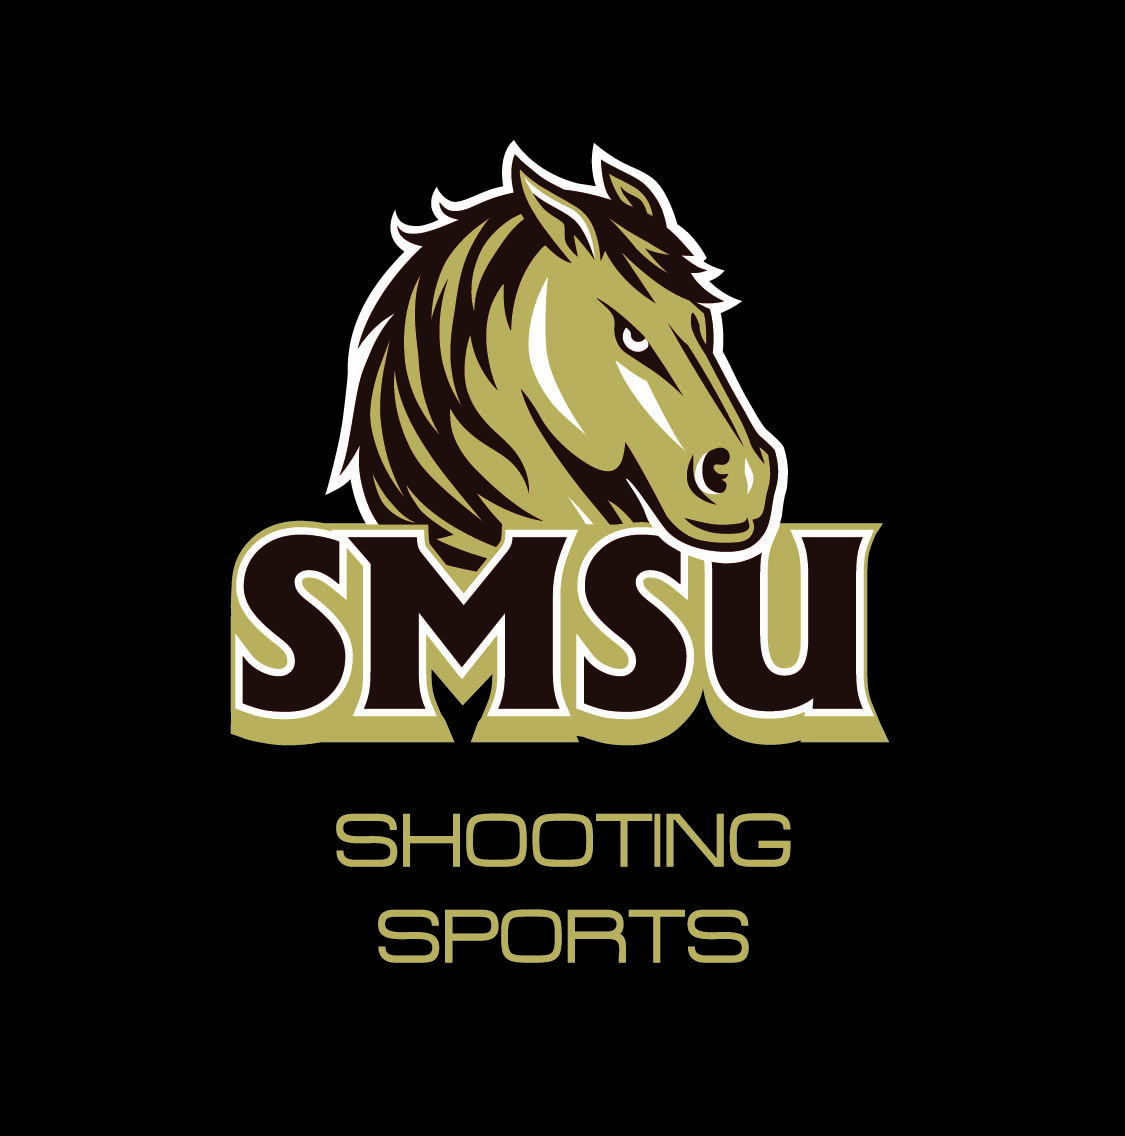 SMSU to Add Club Shooting Sports in 2020-21